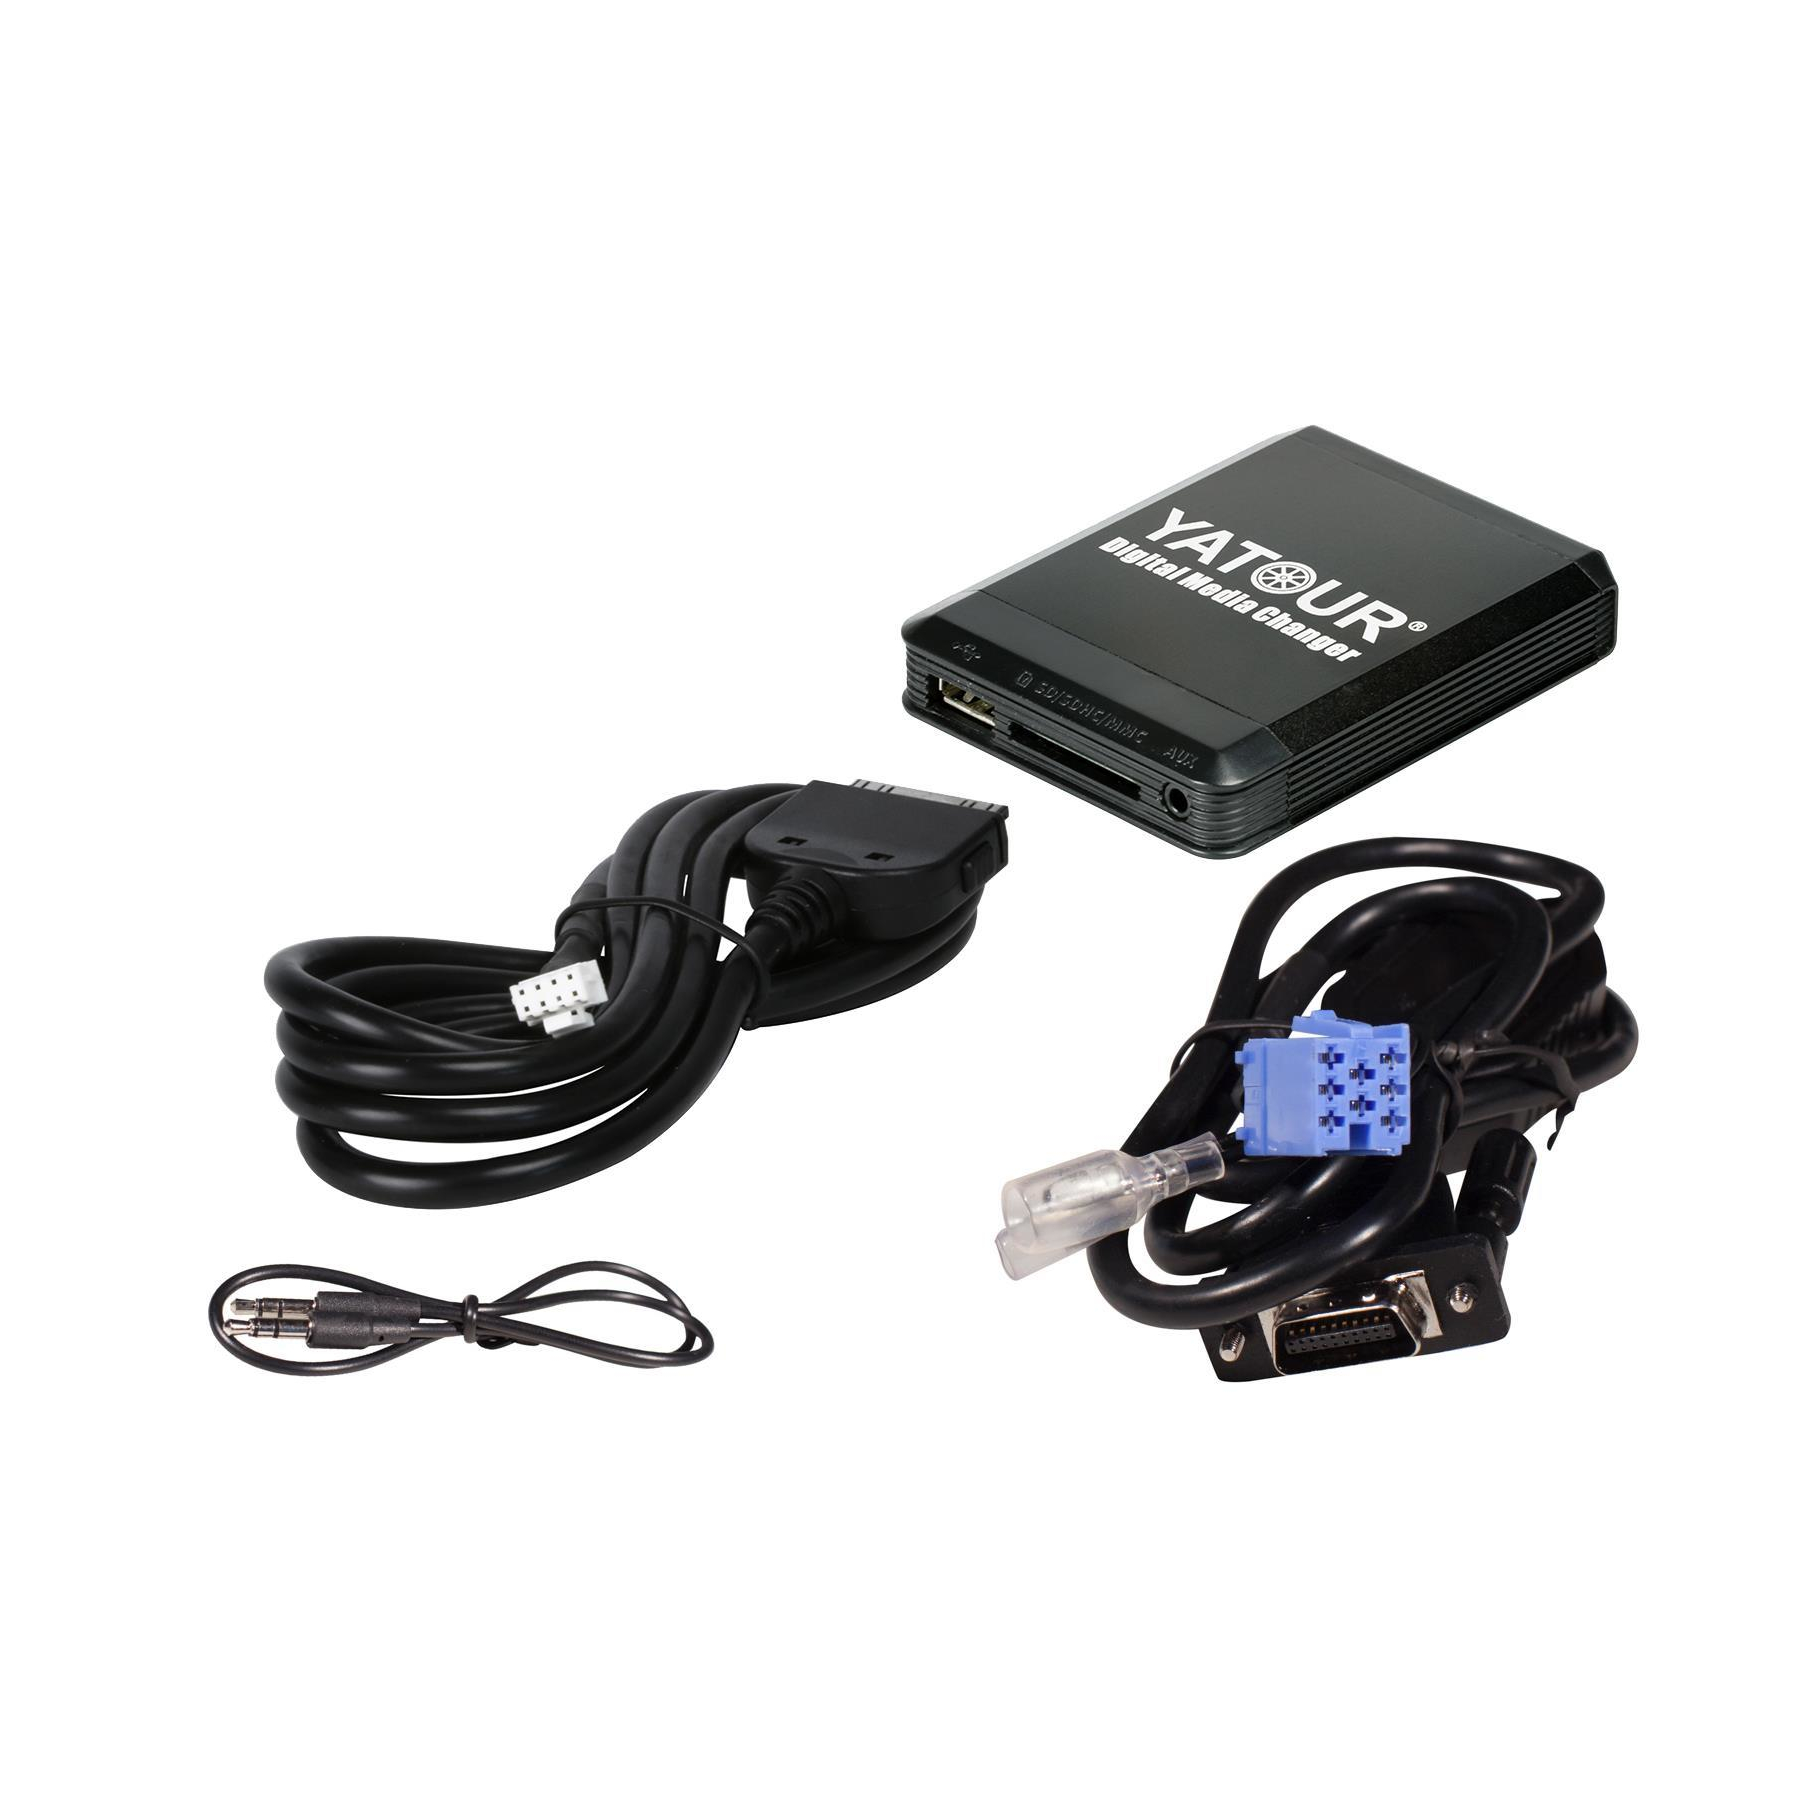 Yatour USB SD iPhone iPod iPad AUX Adapter Peugeot Citroen RD3 Radios